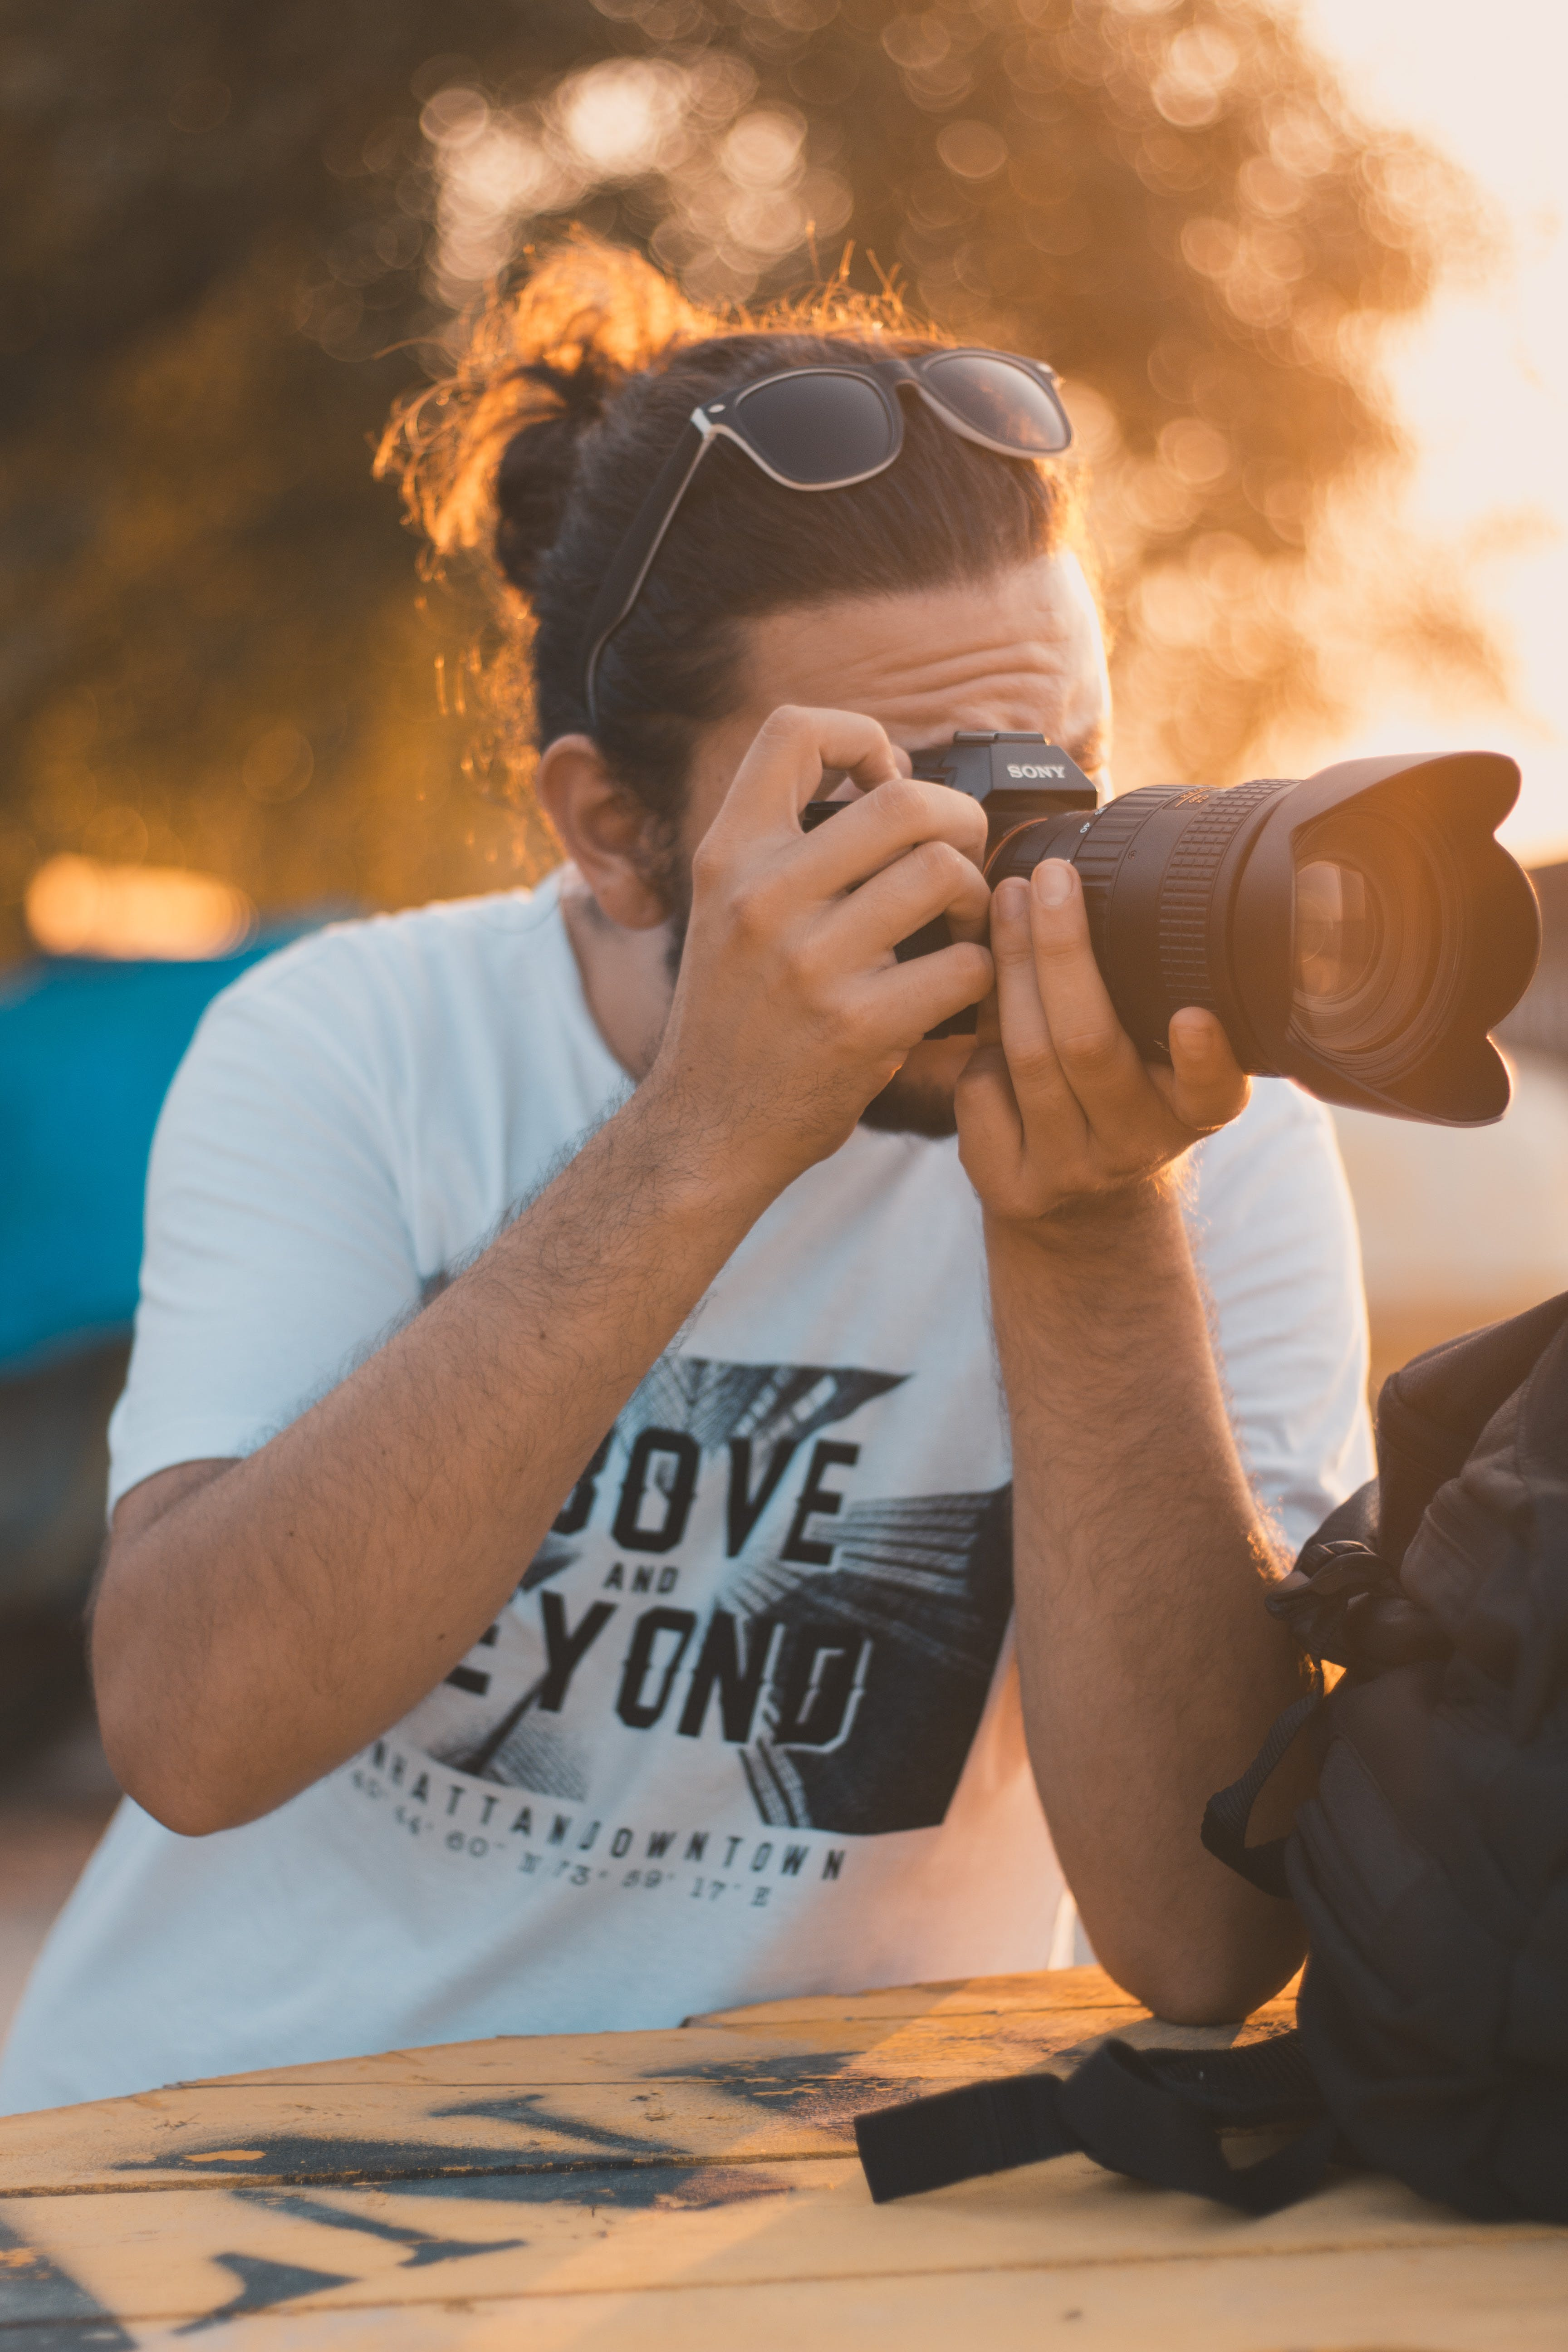 Photo of Man Taking Photo with Dslr Camera